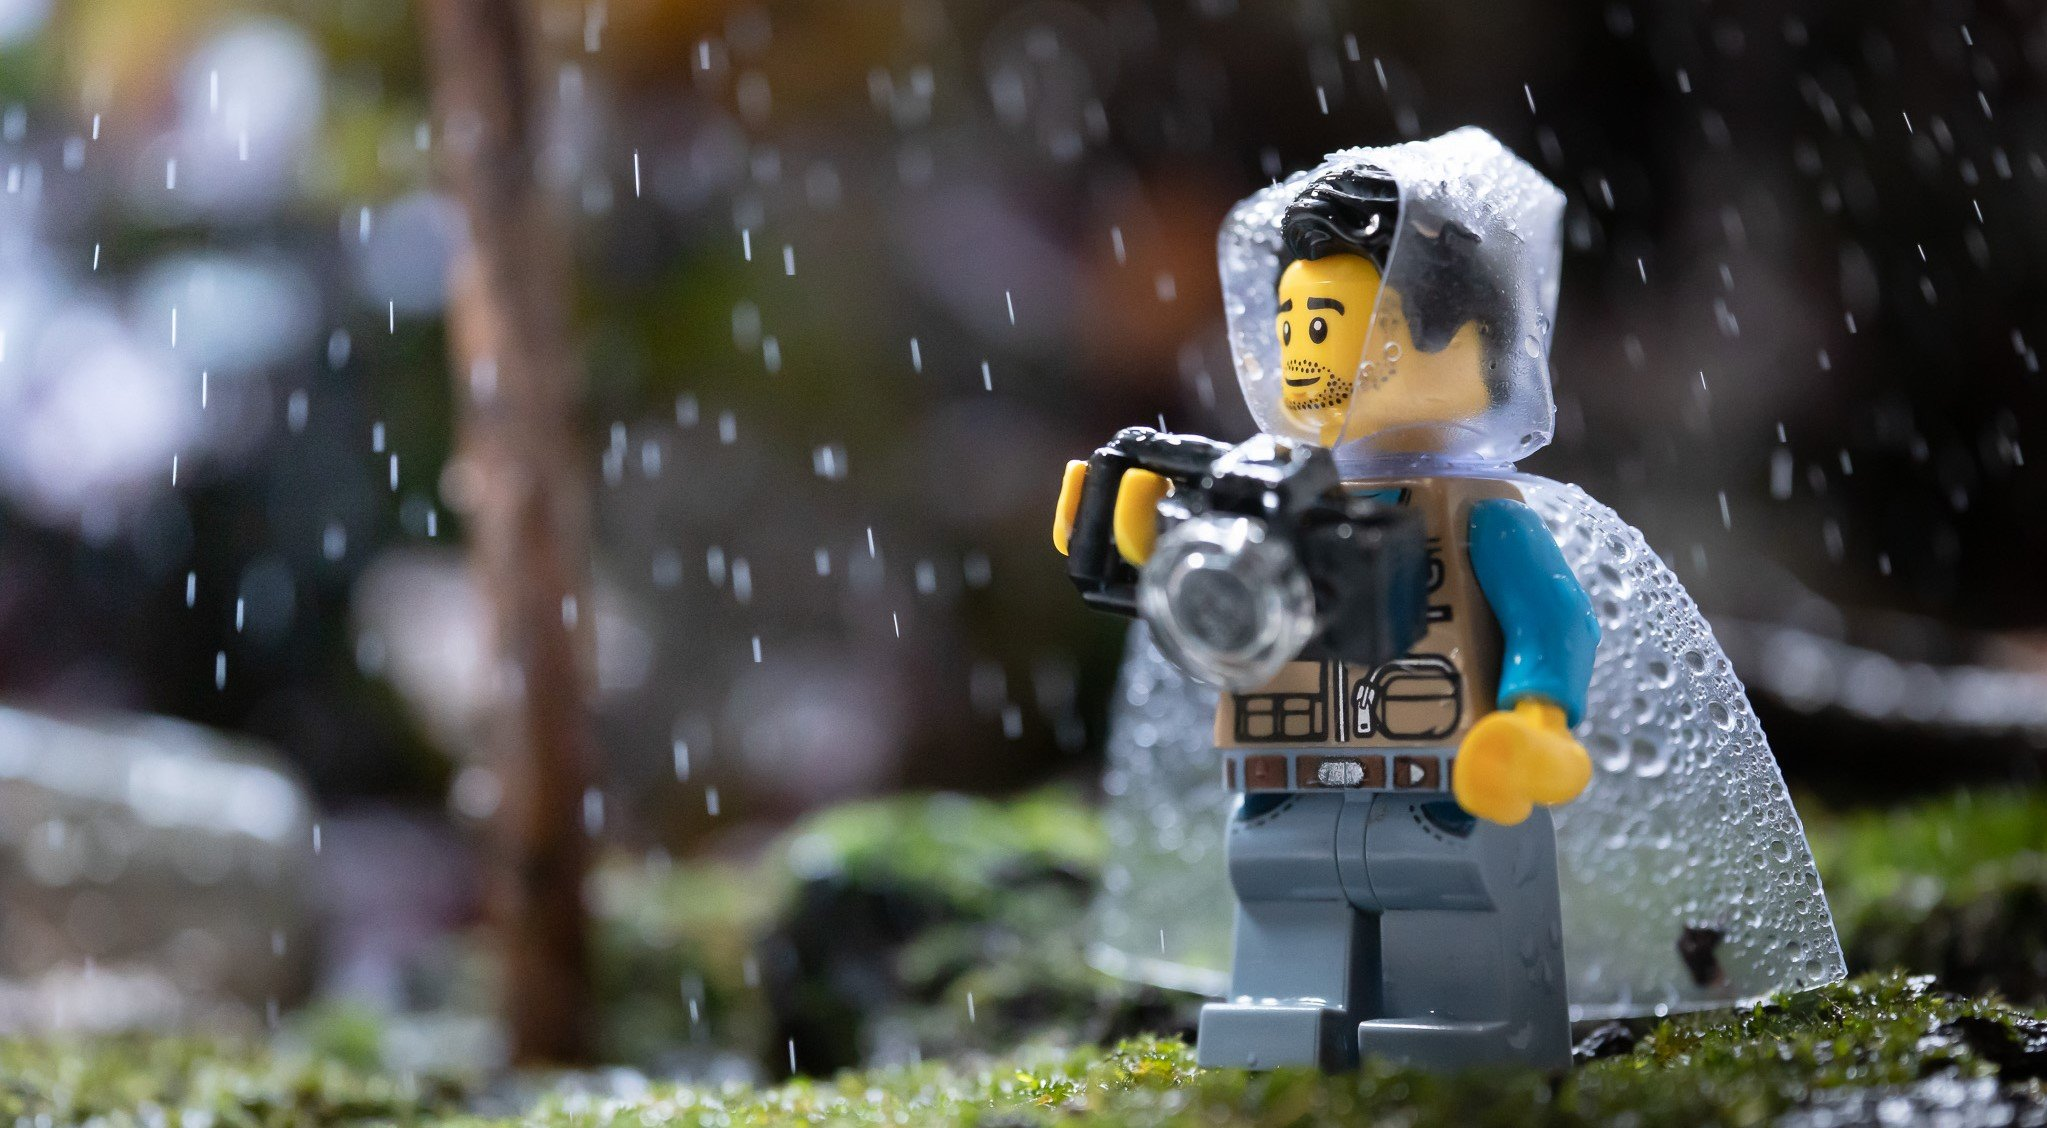 What should you do on your day off from the gym? Go outside like this LEGO!